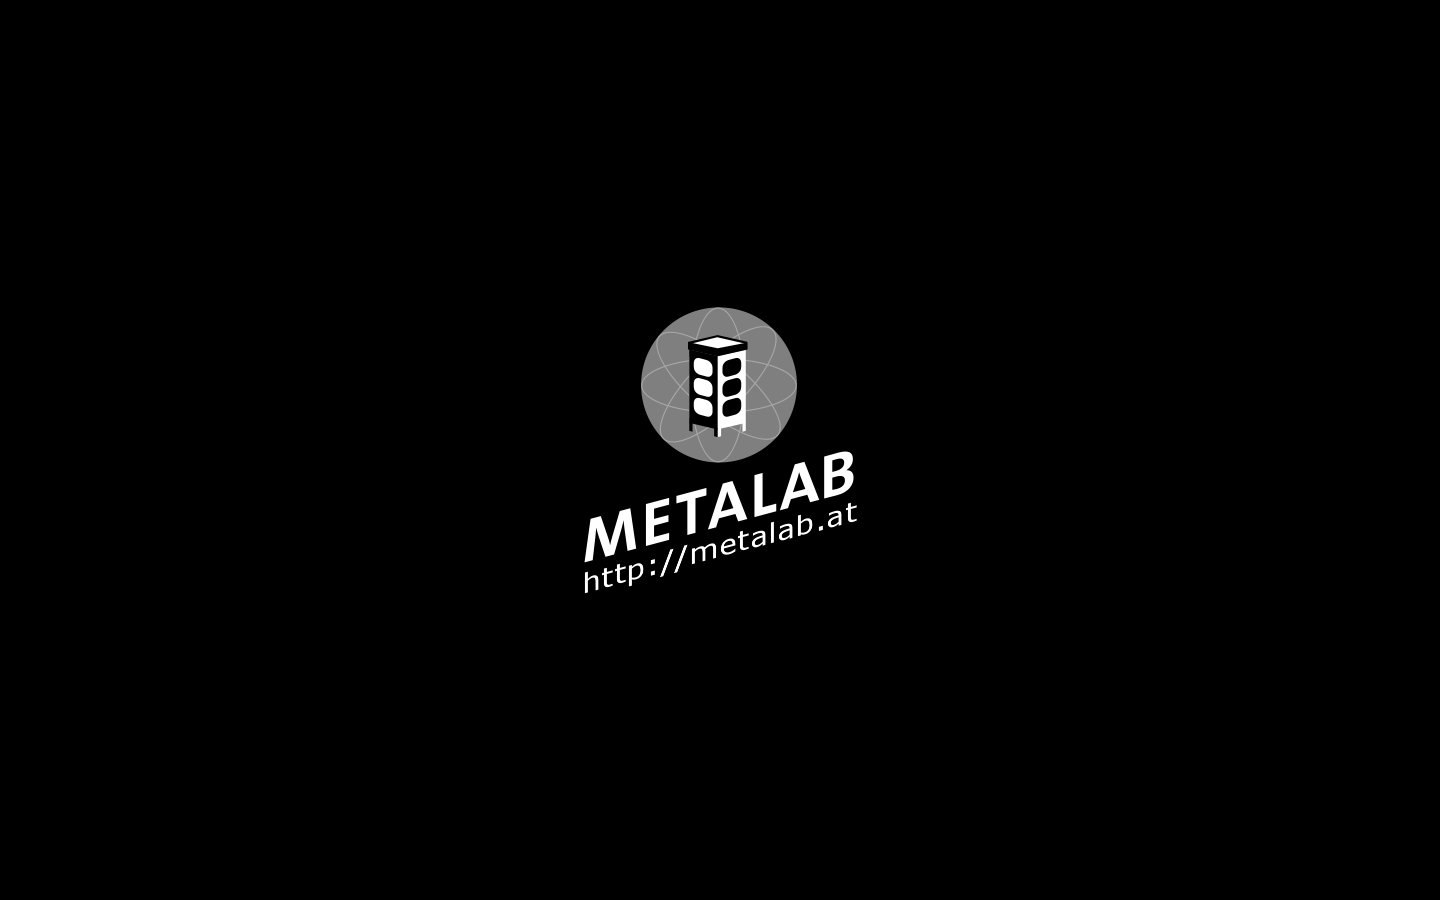 Metalab 1440x900black.png